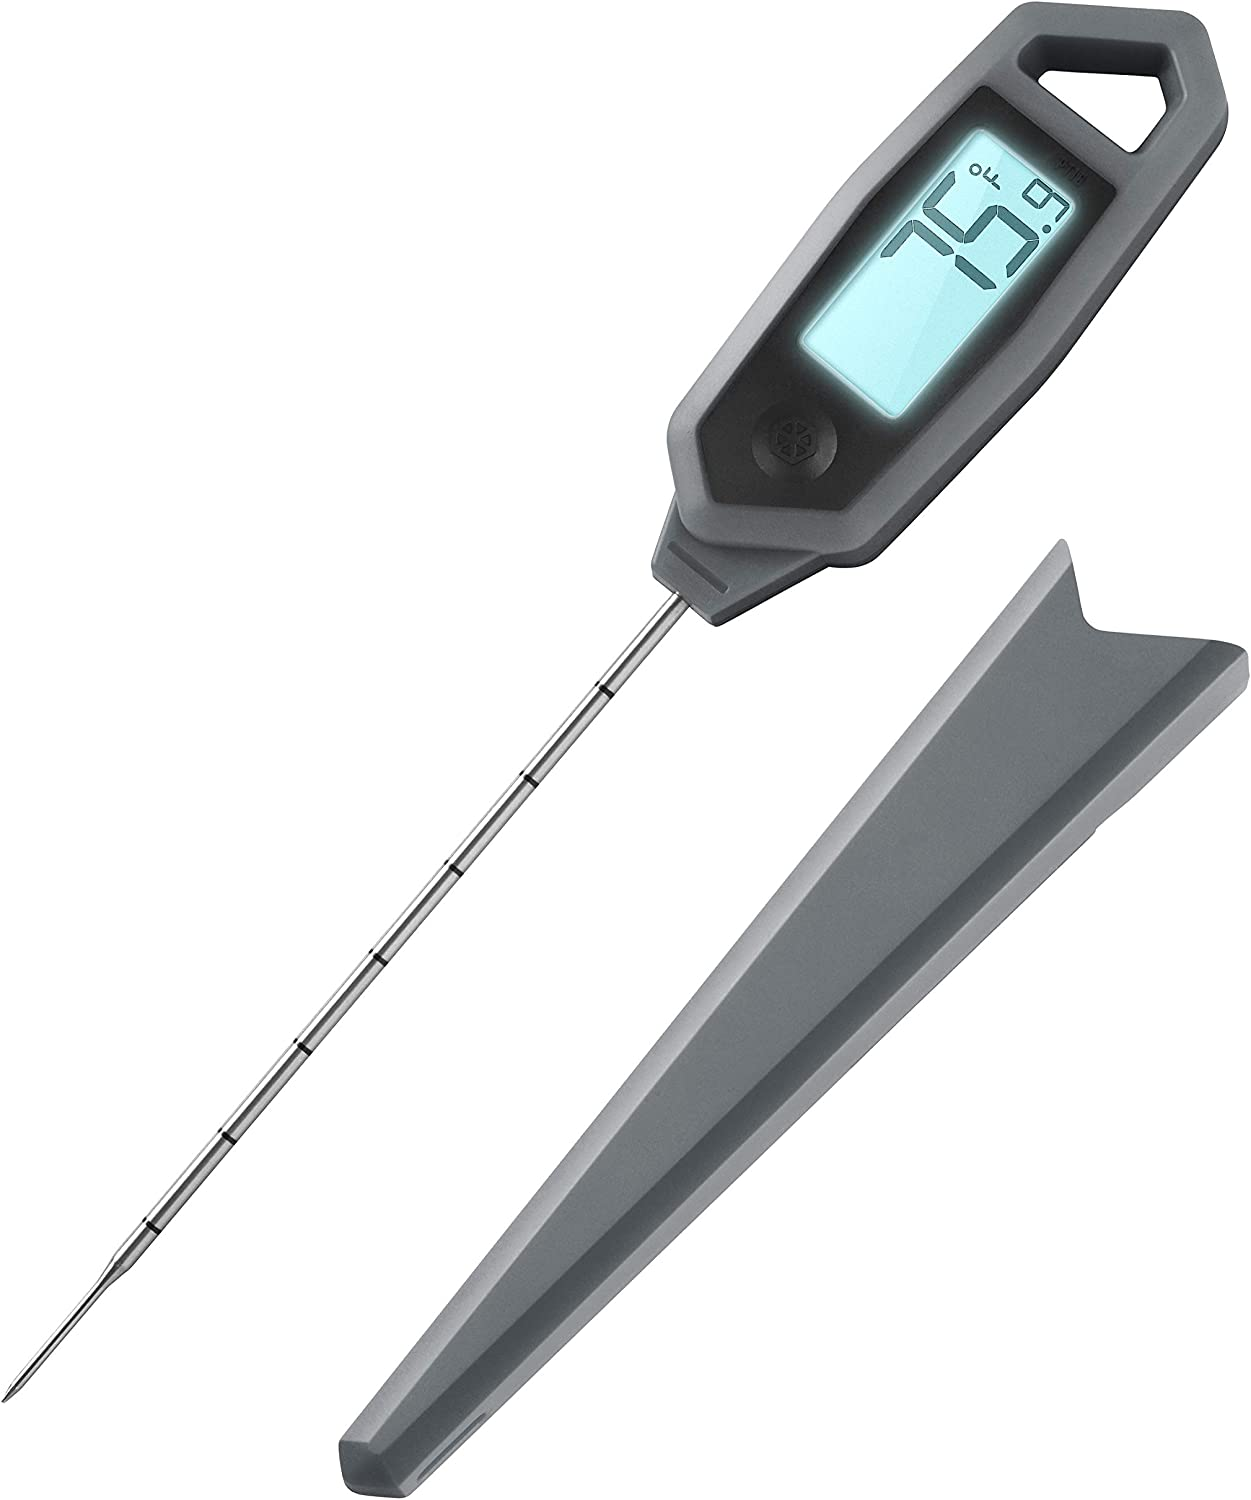 """Lavatools PT18 Professional Commercial 4.5"""" Ambidextrous Backlit Digital Instant Read Meat Thermometer for Kitchen, Food Cooking, Grill, BBQ, Smoker, Candy, Home Brewing, and Oil Deep Frying"""